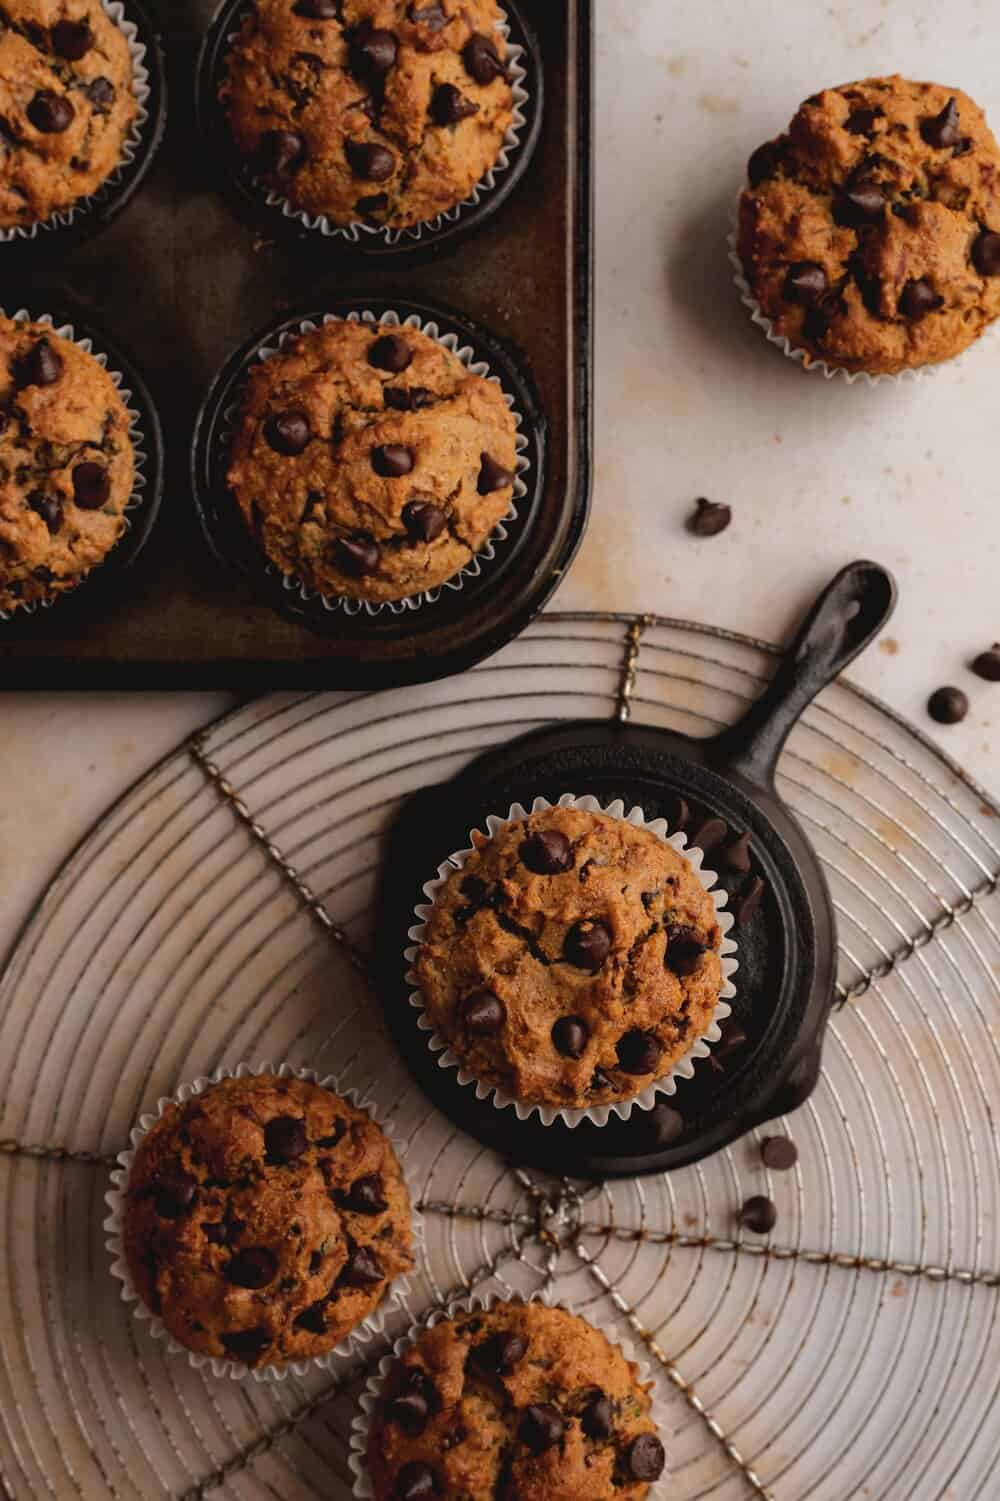 PALEO CHOCOLATE CHIP ZUCCHINI MUFFINS - INGREDIENTS2 cups almond flour 1/4 cup coconut flour1/2 cup almond butter1 tsp cinnamon1 tsp baking soda2 eggs1/2 cup coconut oil, melted1 tsp salt1 heaping cup dairy free chocolate chips1/4 cup coconut sugar2 zucchini, grated (1 cup)